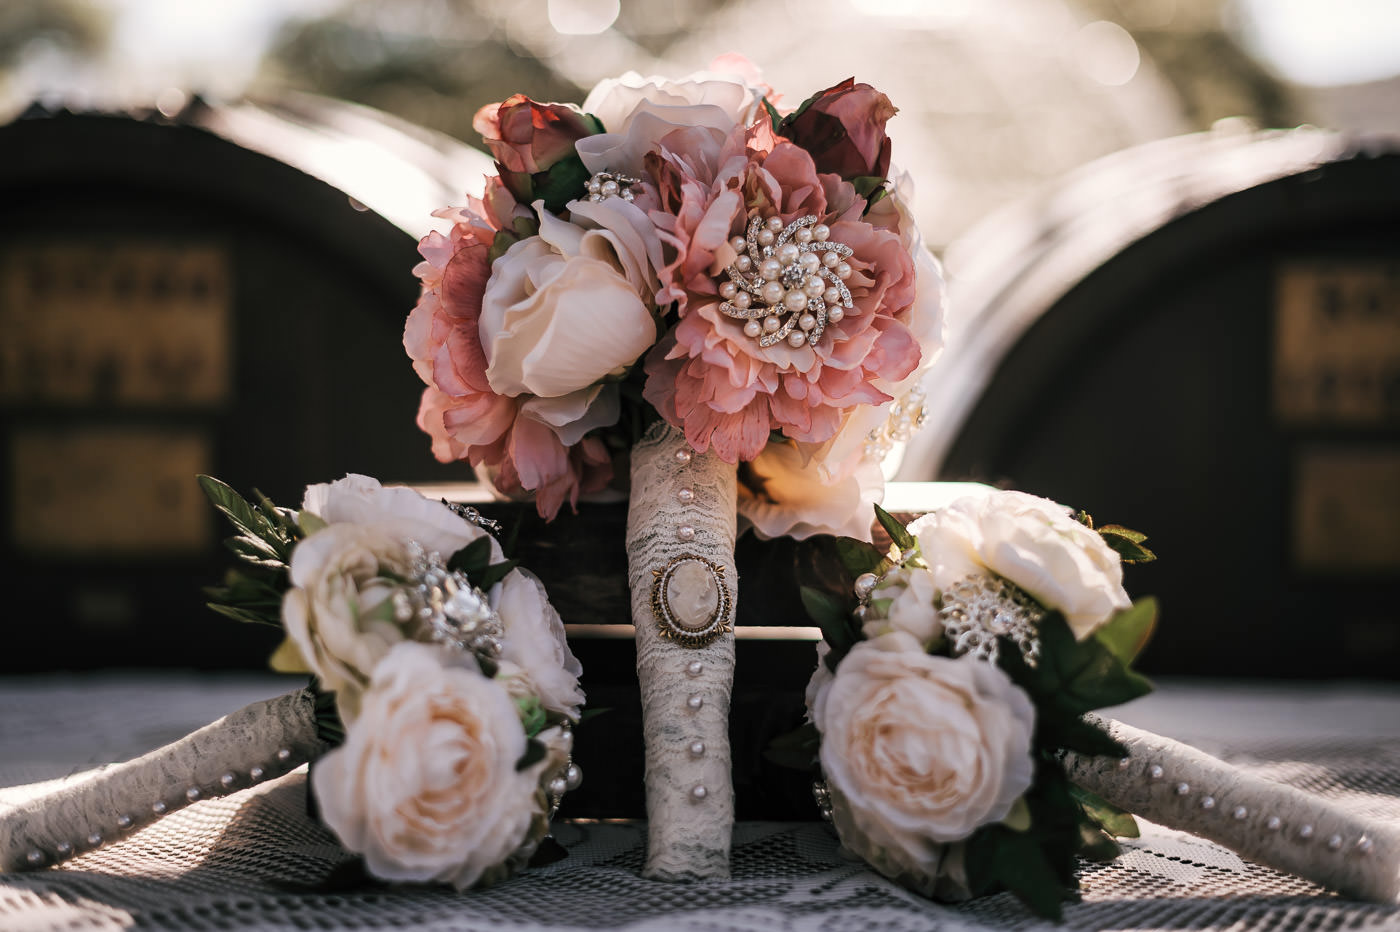 Flowers - Have you always dreamt of having a bouquet? Then get one. Have a florist local to your destination put something together you can pick up the day before or head to the local market the morning of and do it yourself.